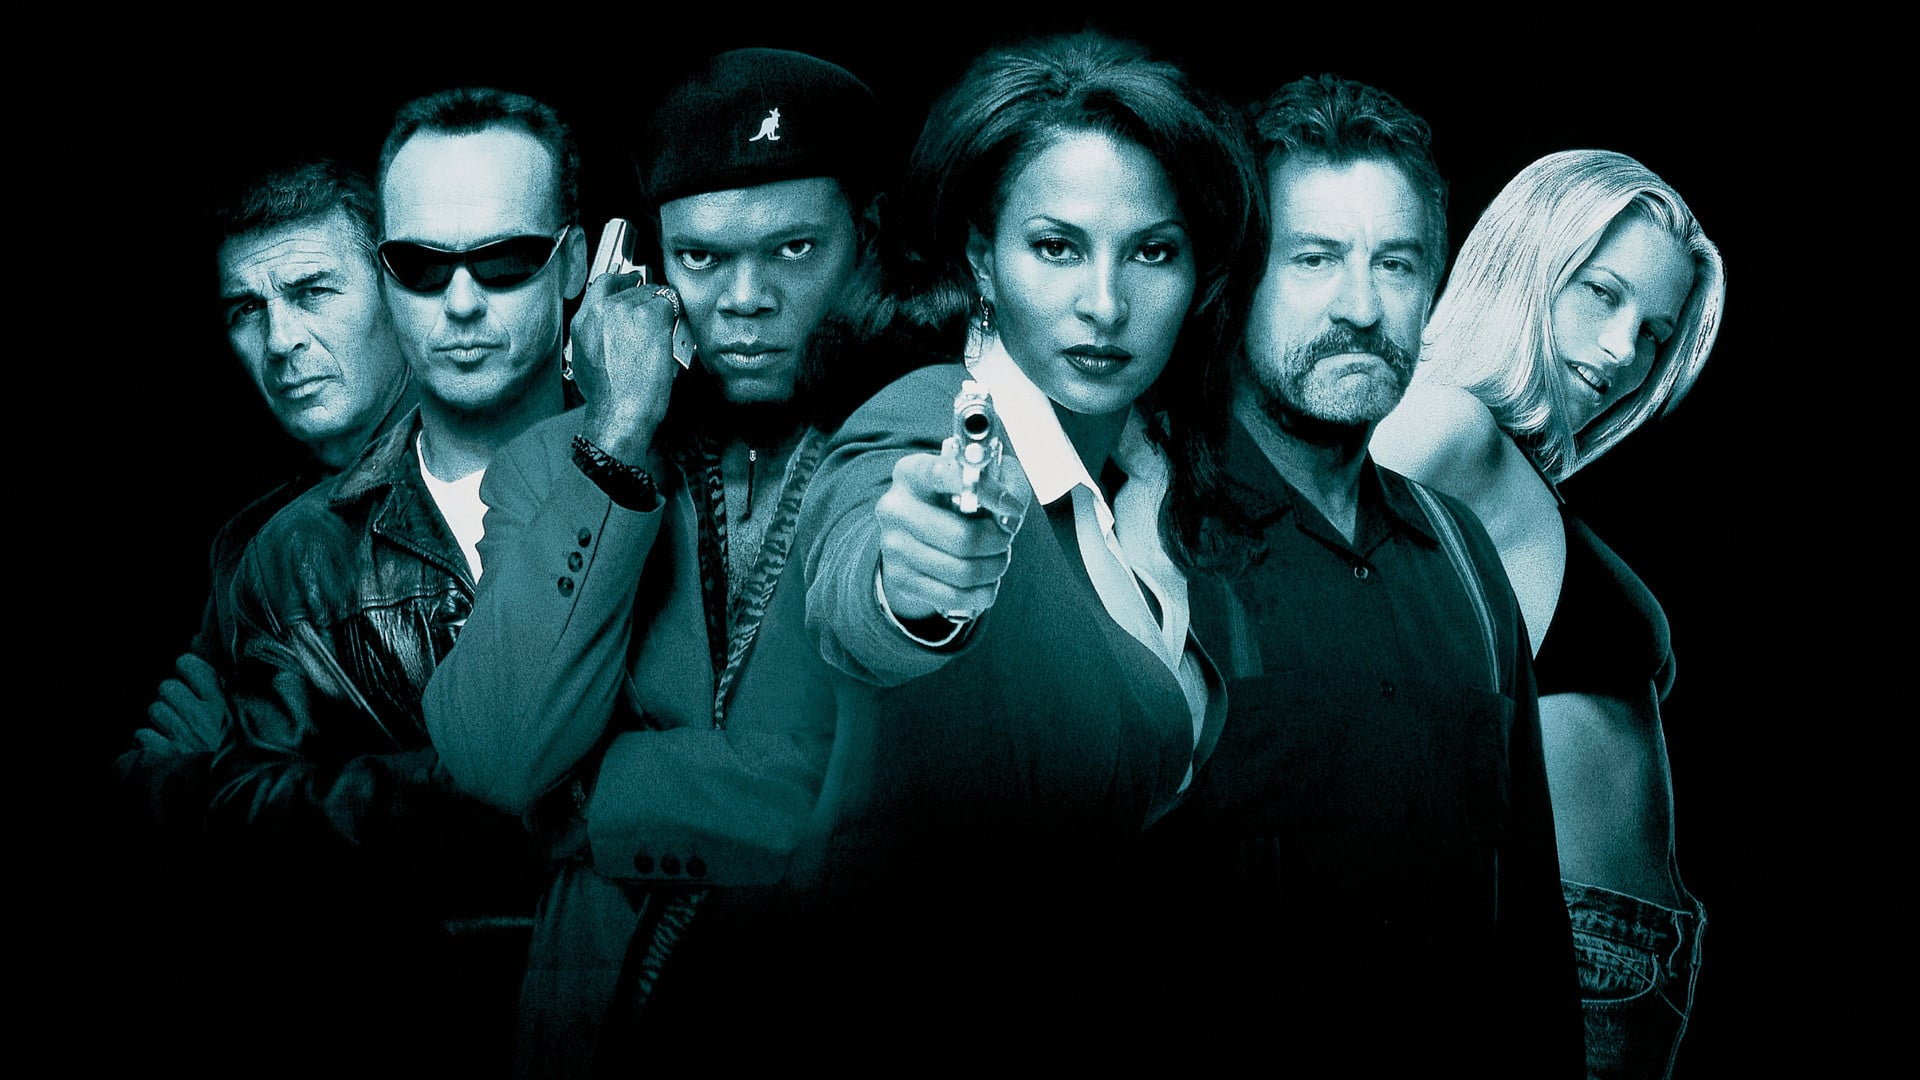 Jackie Brown poster - Arriving on Netflix in August